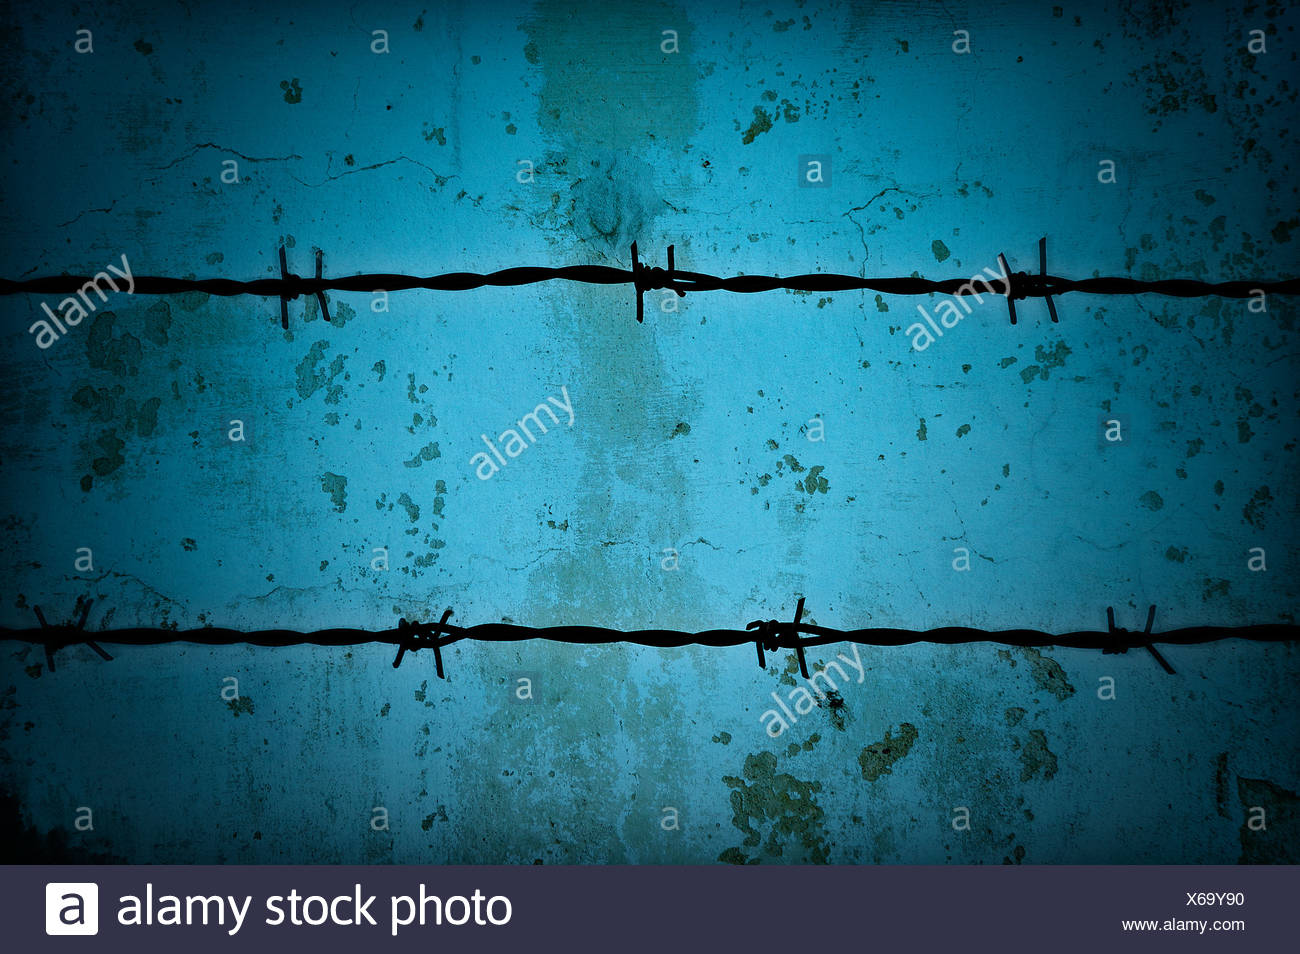 Barbed wire fence. - Stock Image